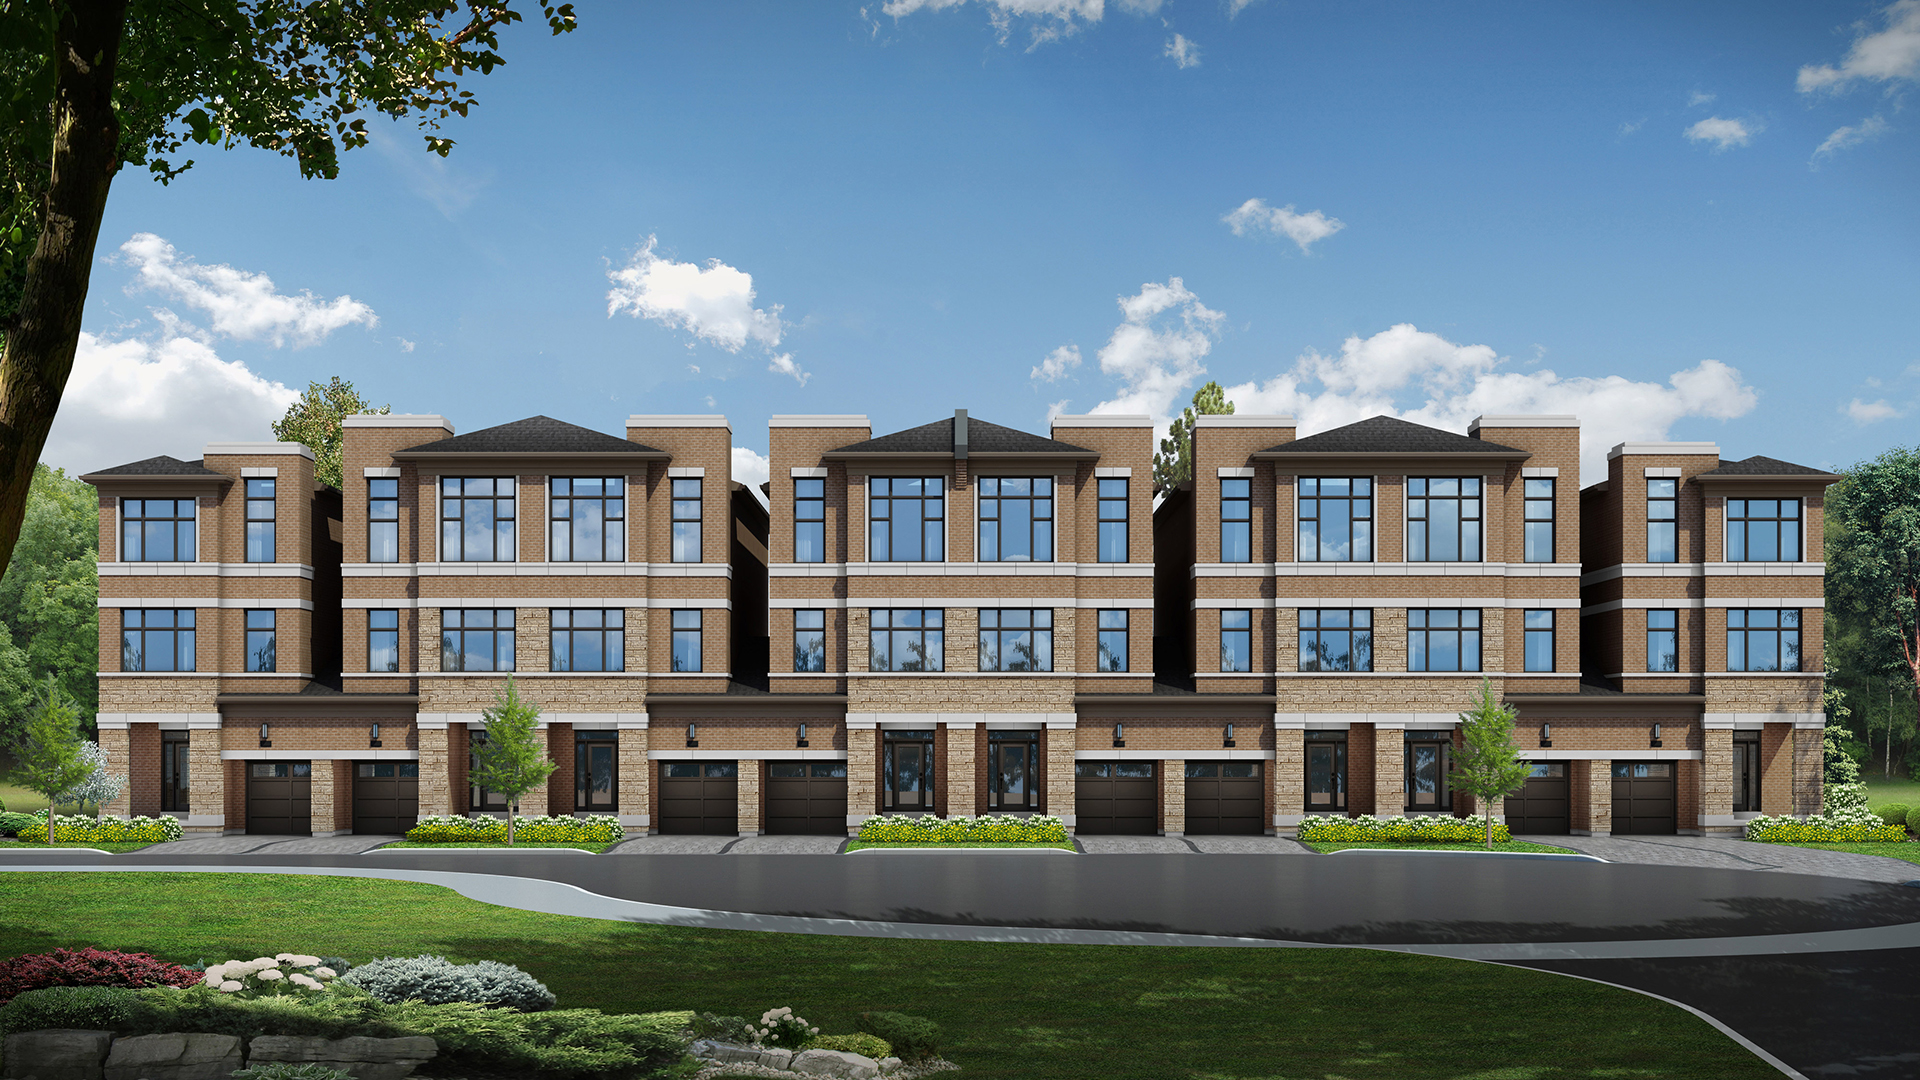 The Belmont Townhomes